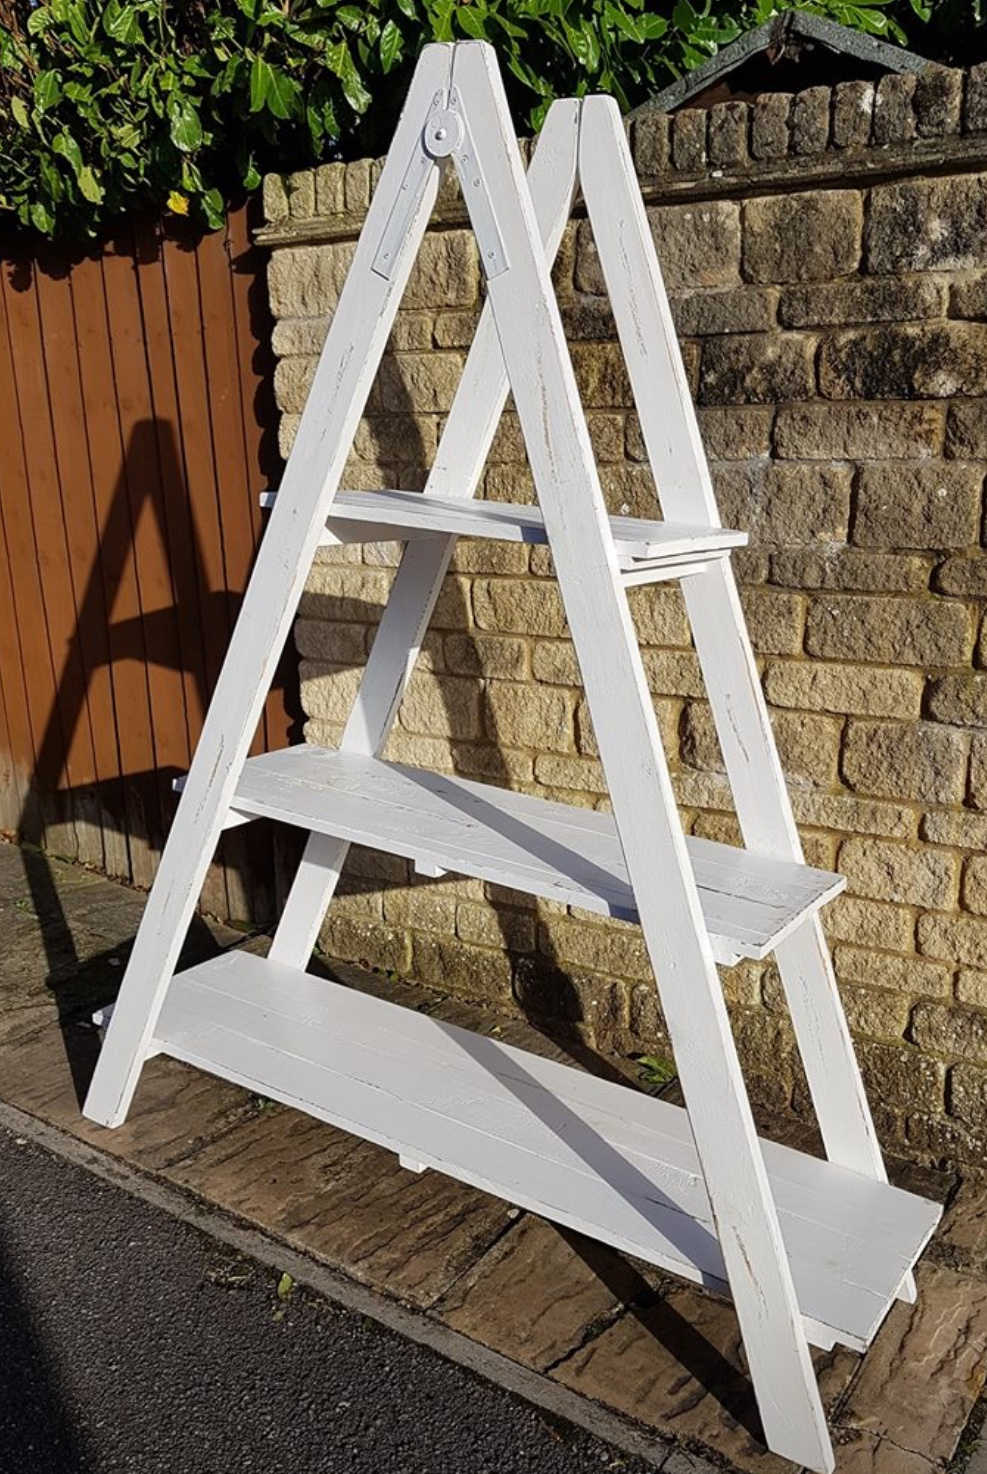 Vintage A Frame with 3 shelves - £40